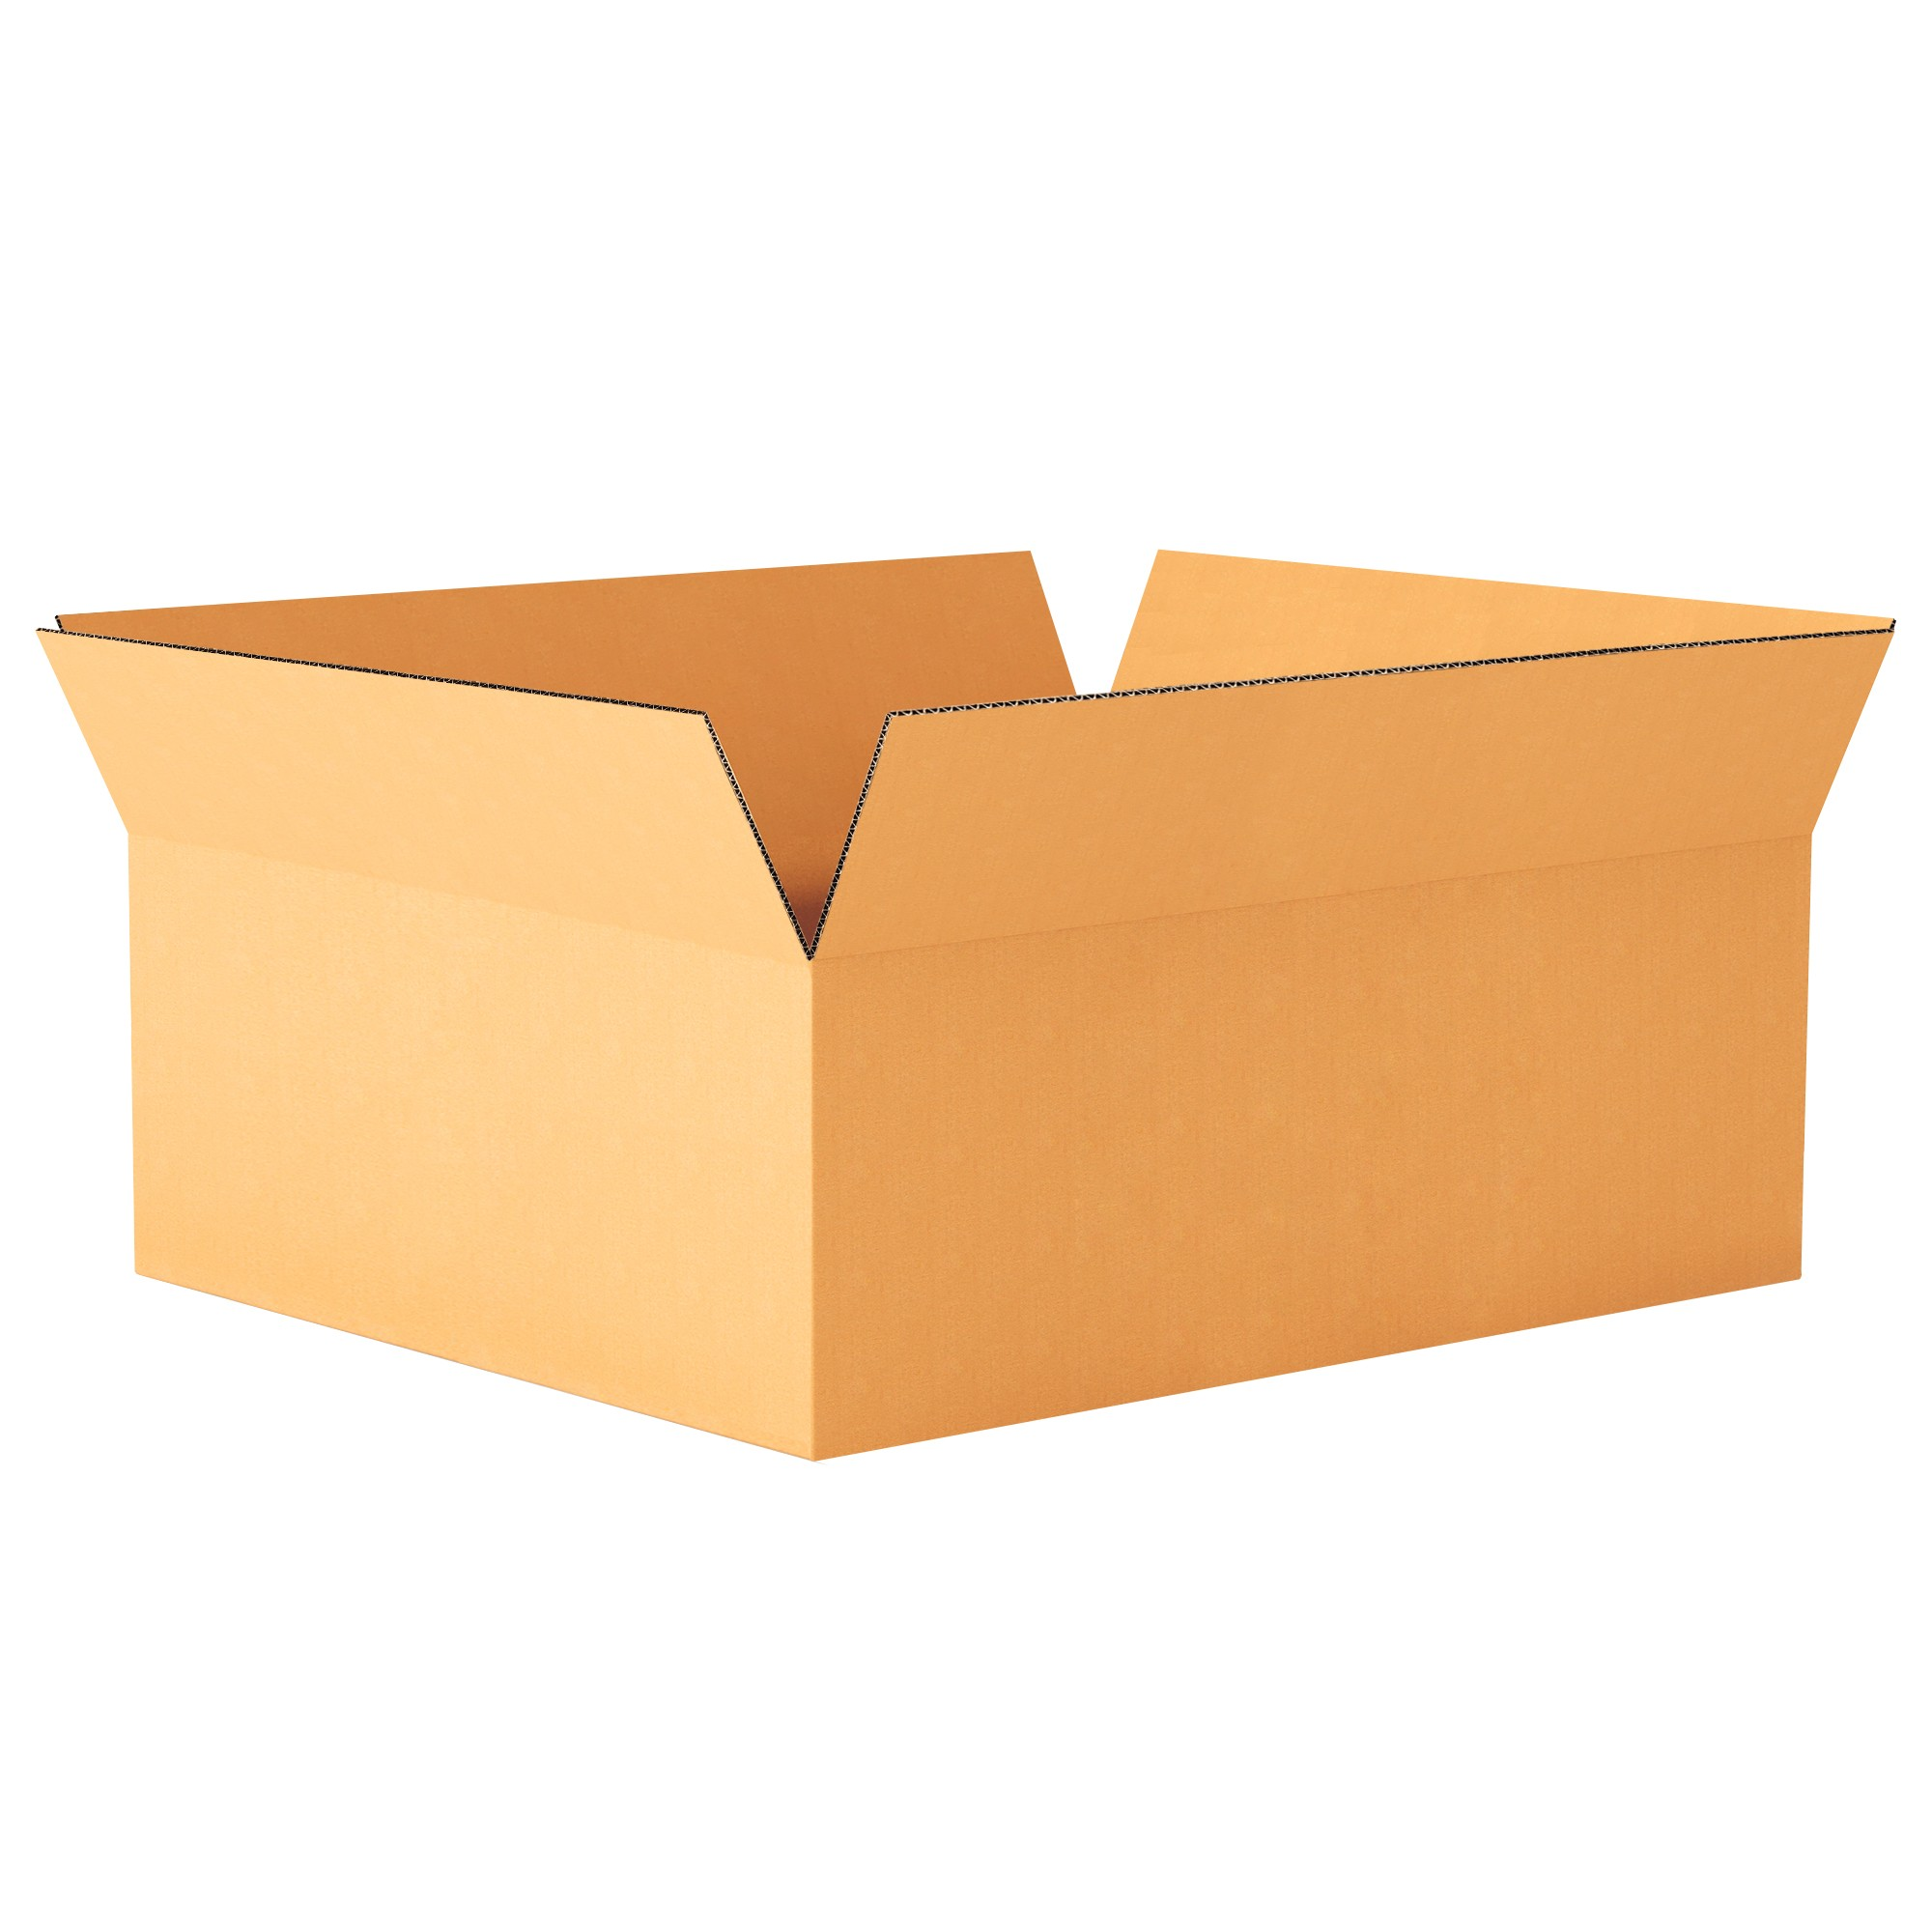 """TOTALPACK® 8 x 8 x 4"""" Single Wall Corrugated Boxes 25 Units"""